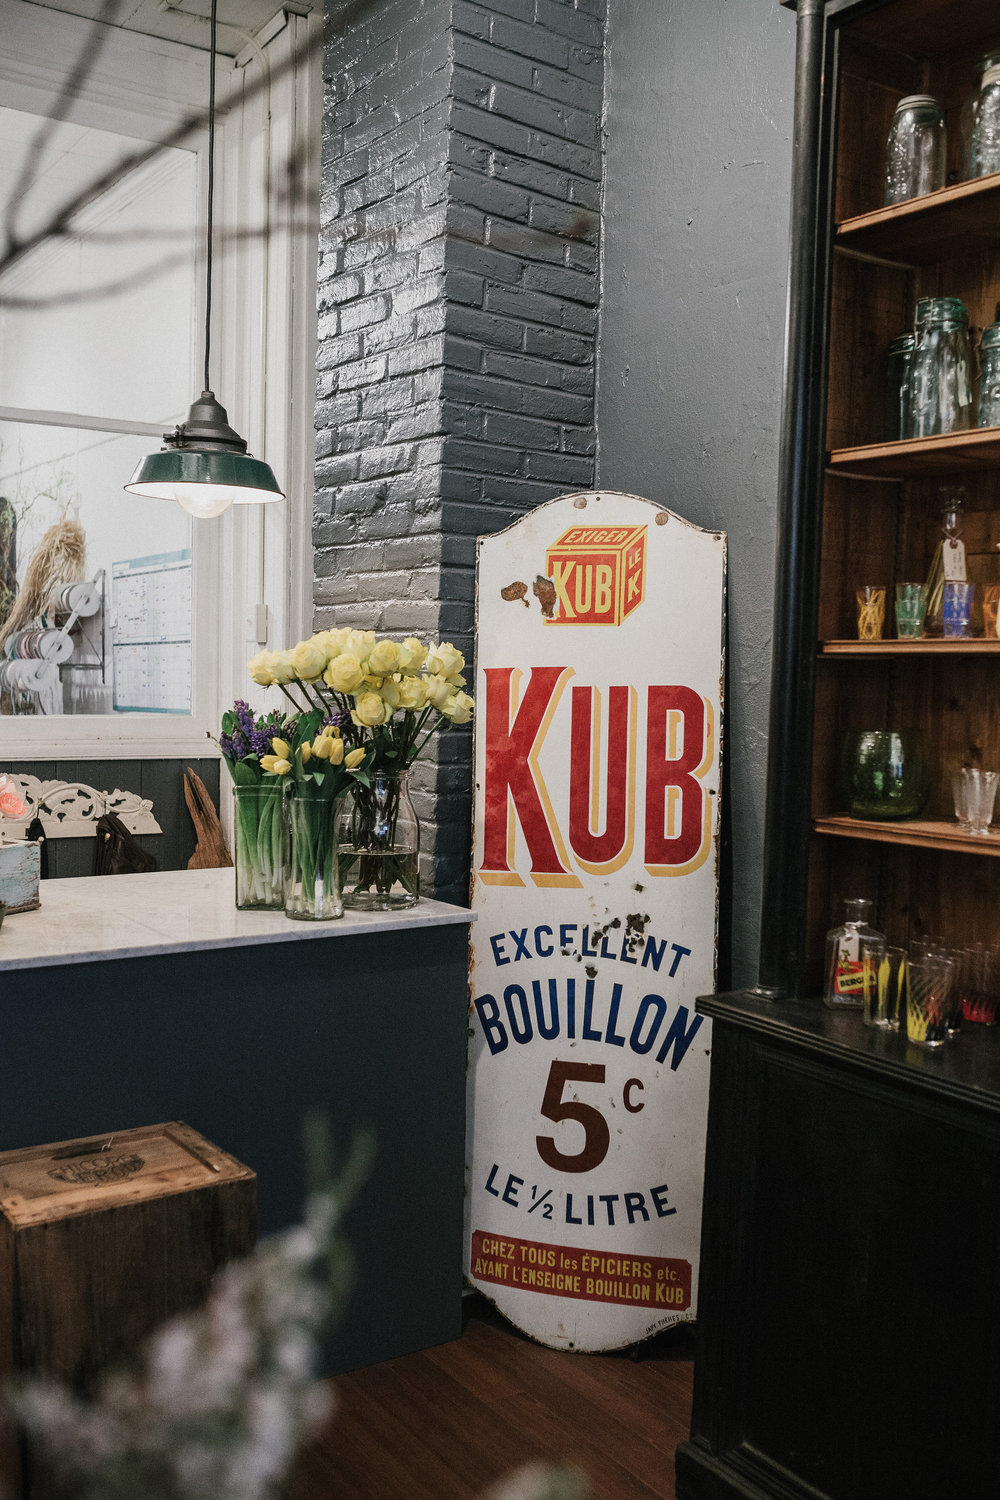 French enamel epicerie sgin for kub bouillon (circa 1900)